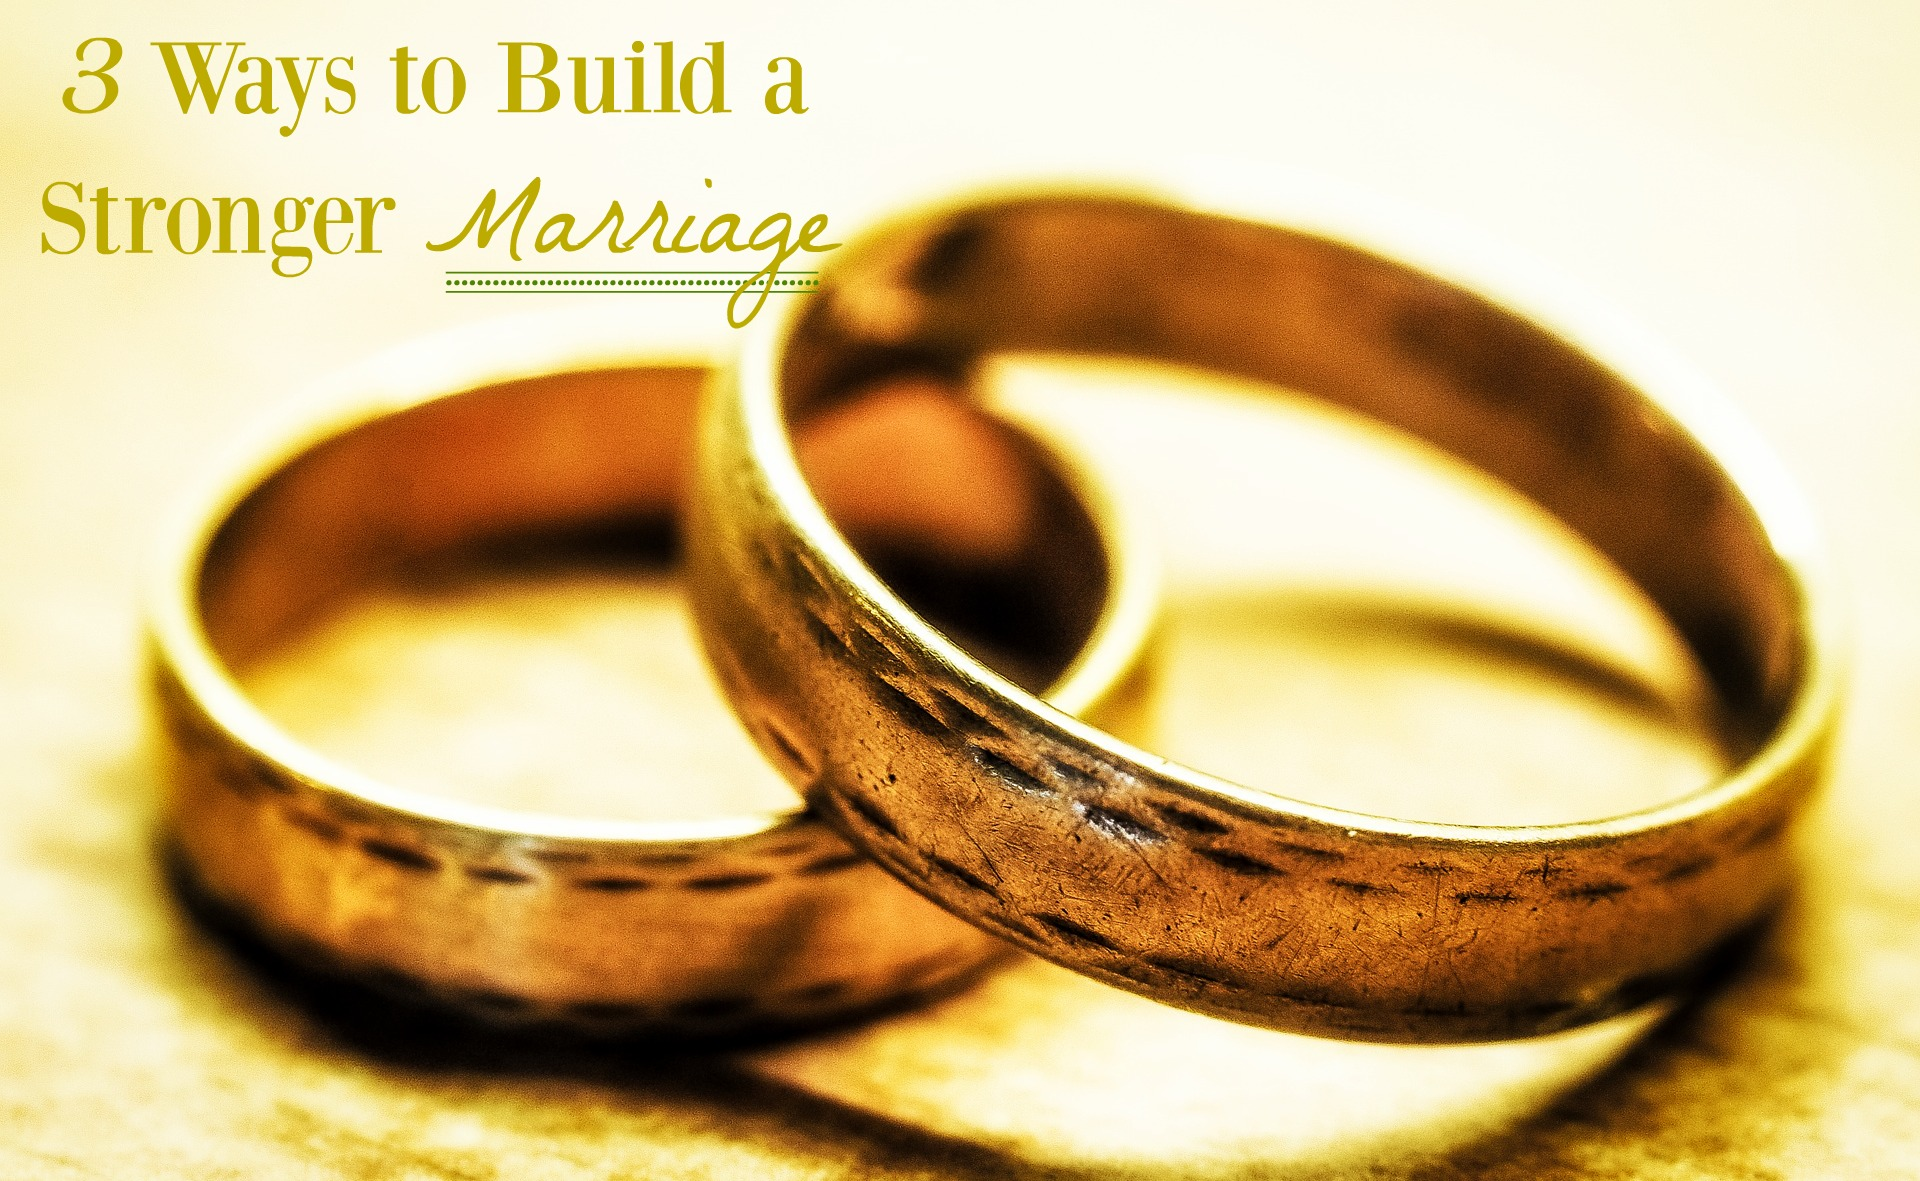 3-ways-to-build-a-stonger-marriage